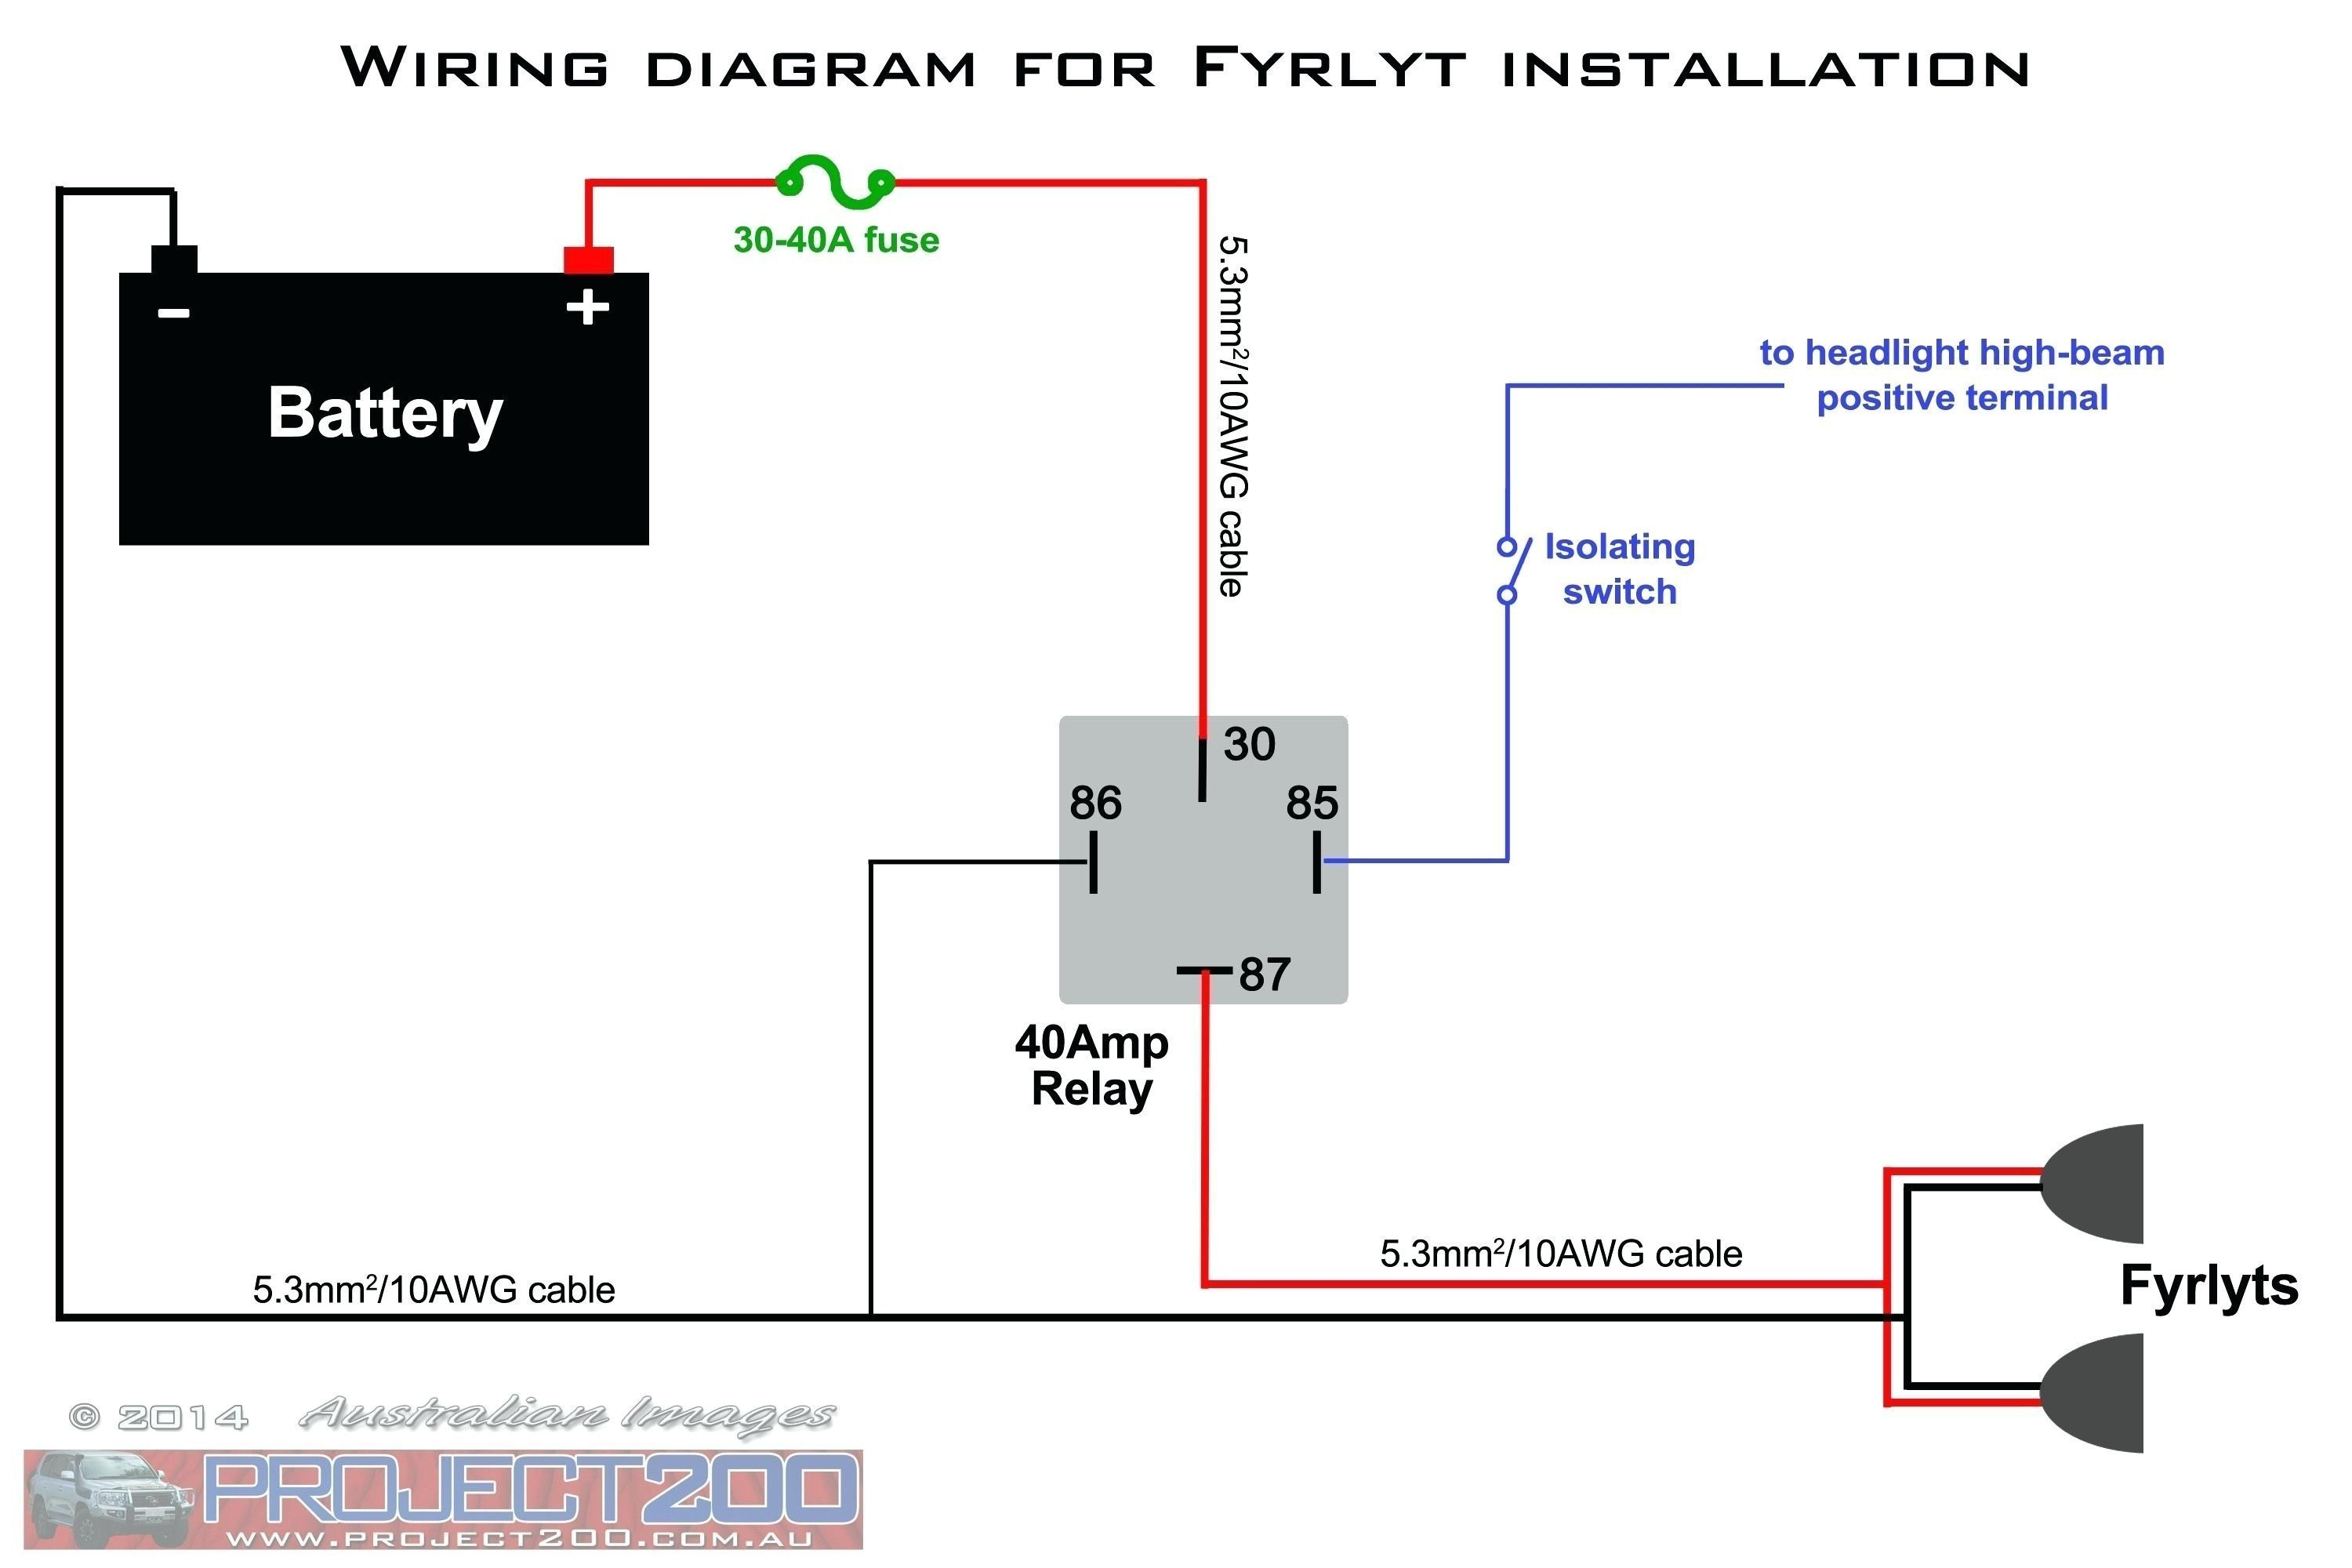 Wiring Diagrams For 6 Recessed Lighting In Series Valid Wiring Diagram For Series Lights Best Wiring Diagram Lights In